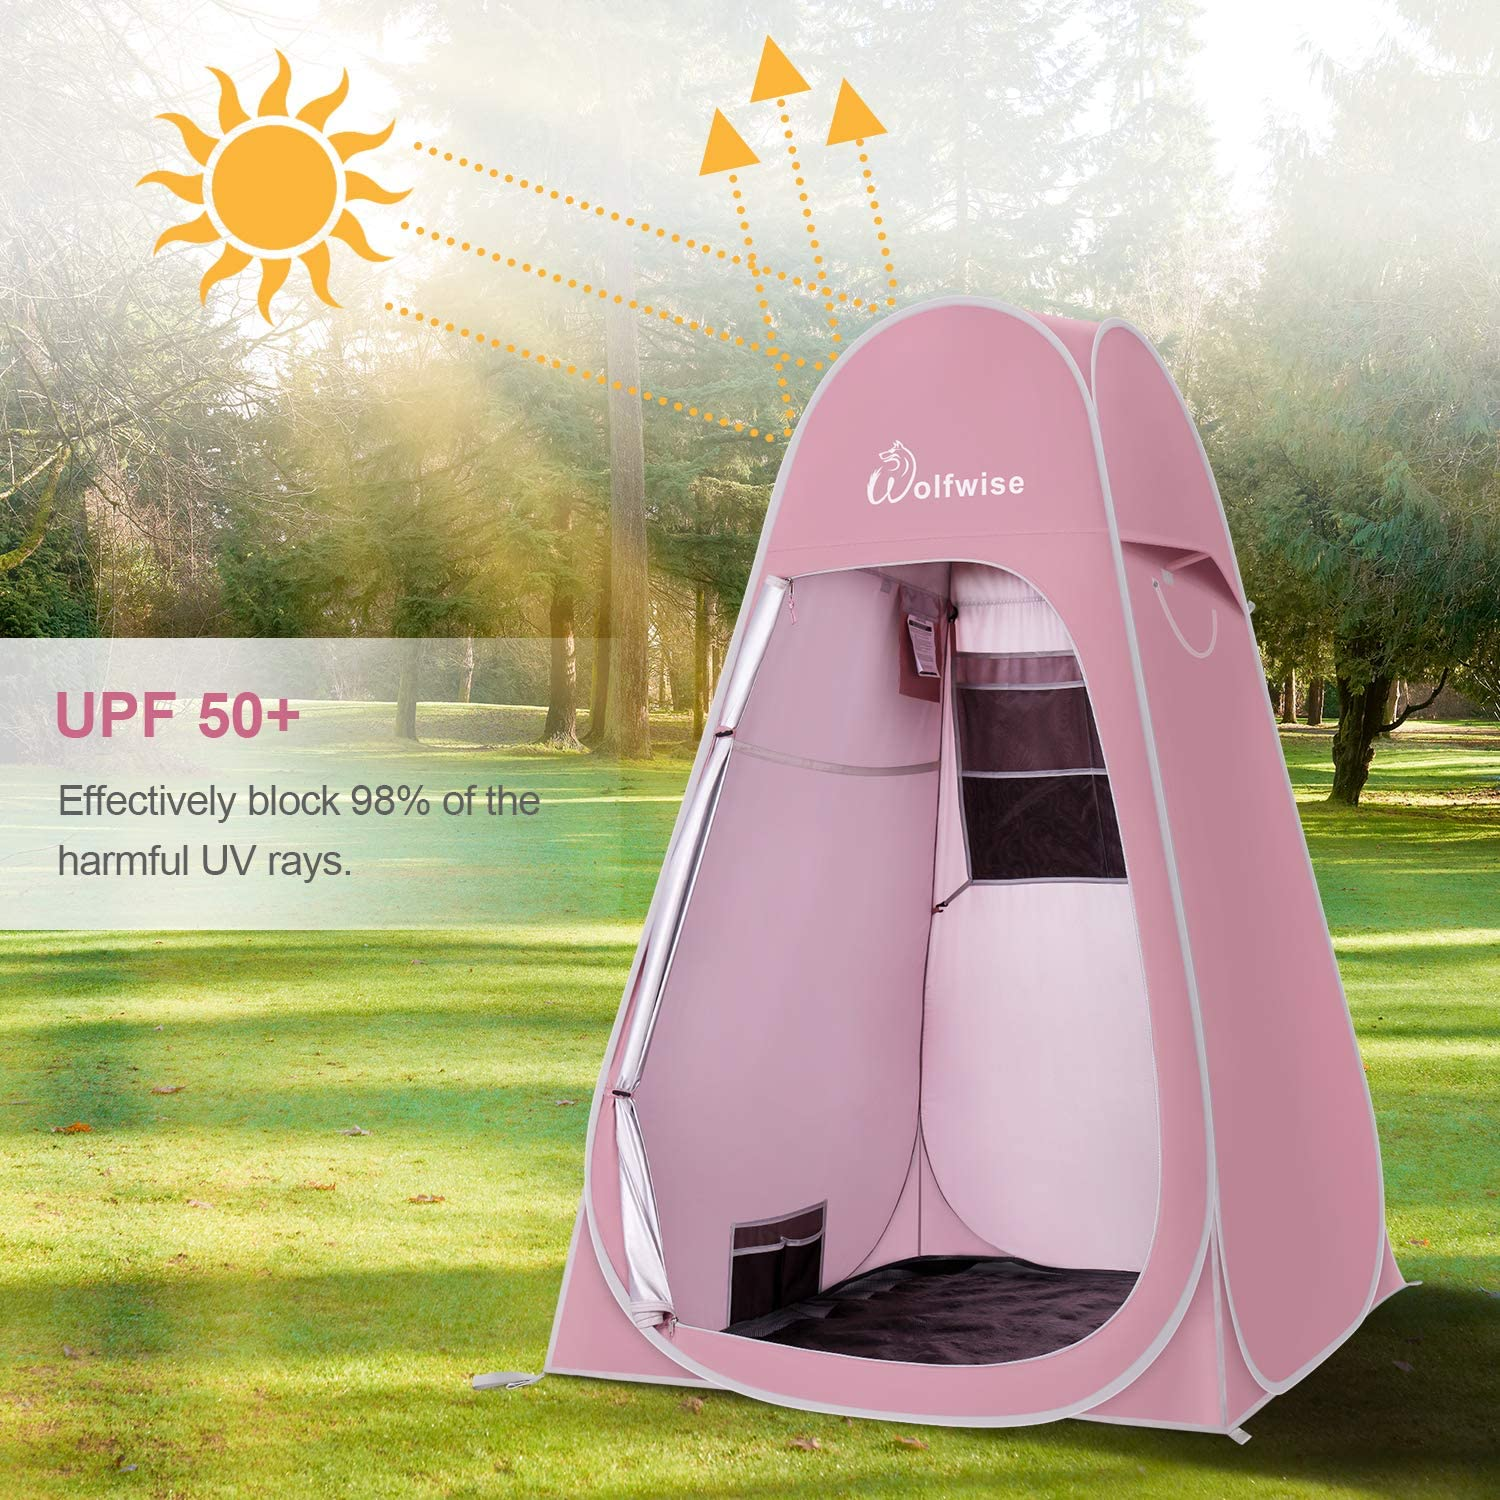 WolfWise Portable Pop Up Privacy Shower Tent Spacious Changing Room for Camping Hiking Beach Toilet Shower Bathroom: Sports & Outdoors